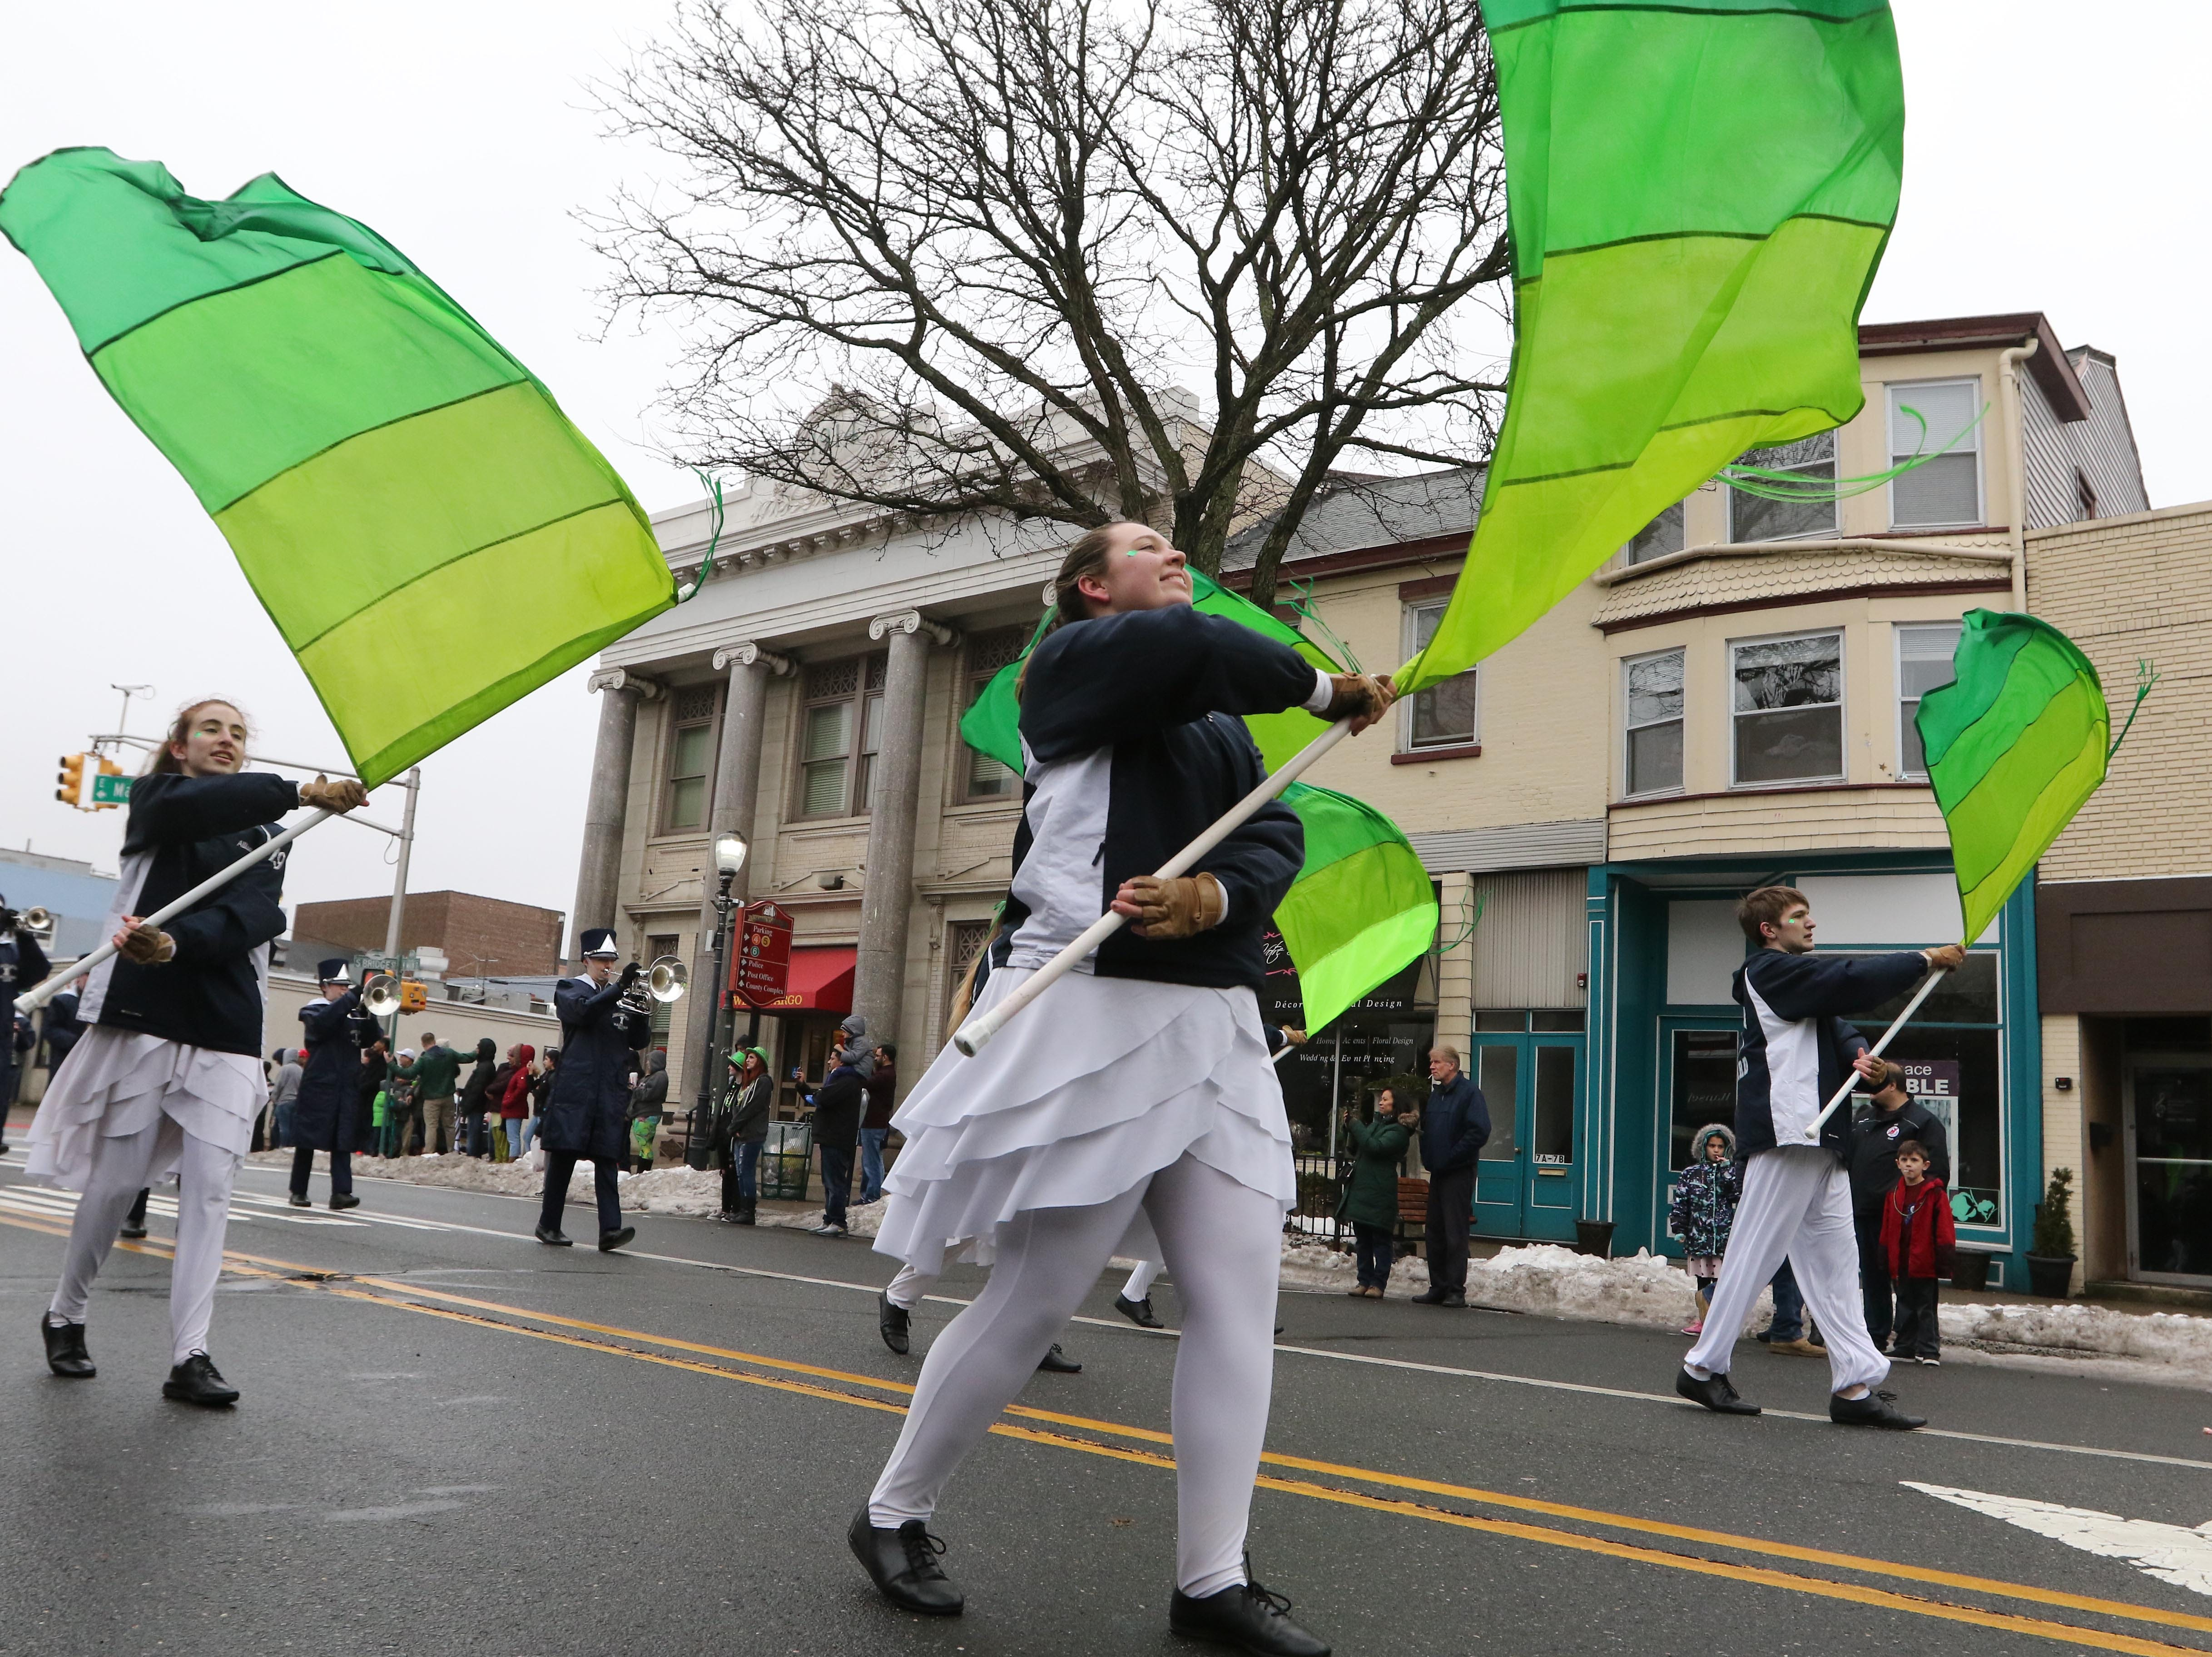 Members of the Immaculata High School marching band take part in the 28th Somerville St. Patrick's Parade along Main Street on Sunday.